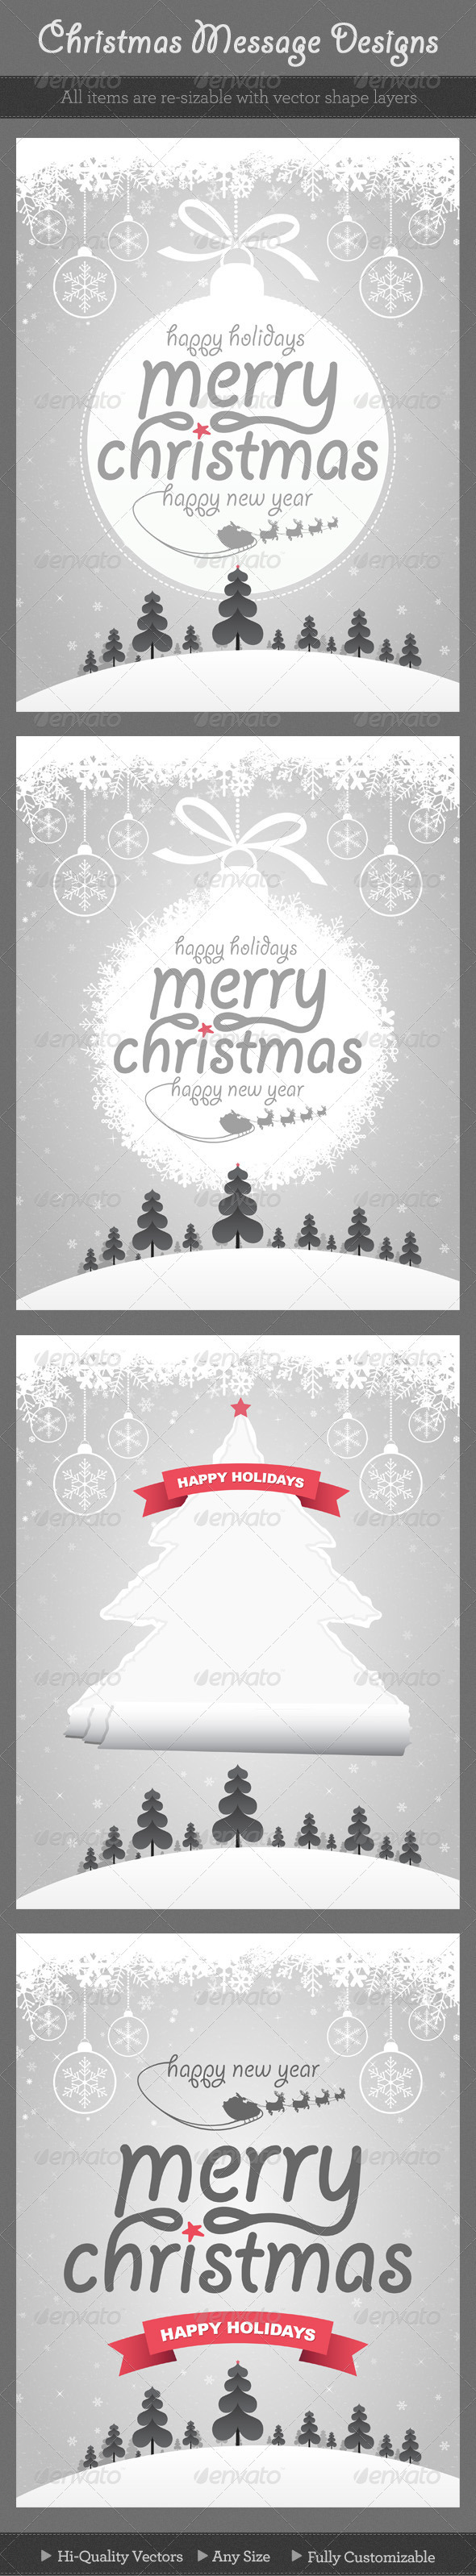 GraphicRiver Christmas Message Designs 3409680